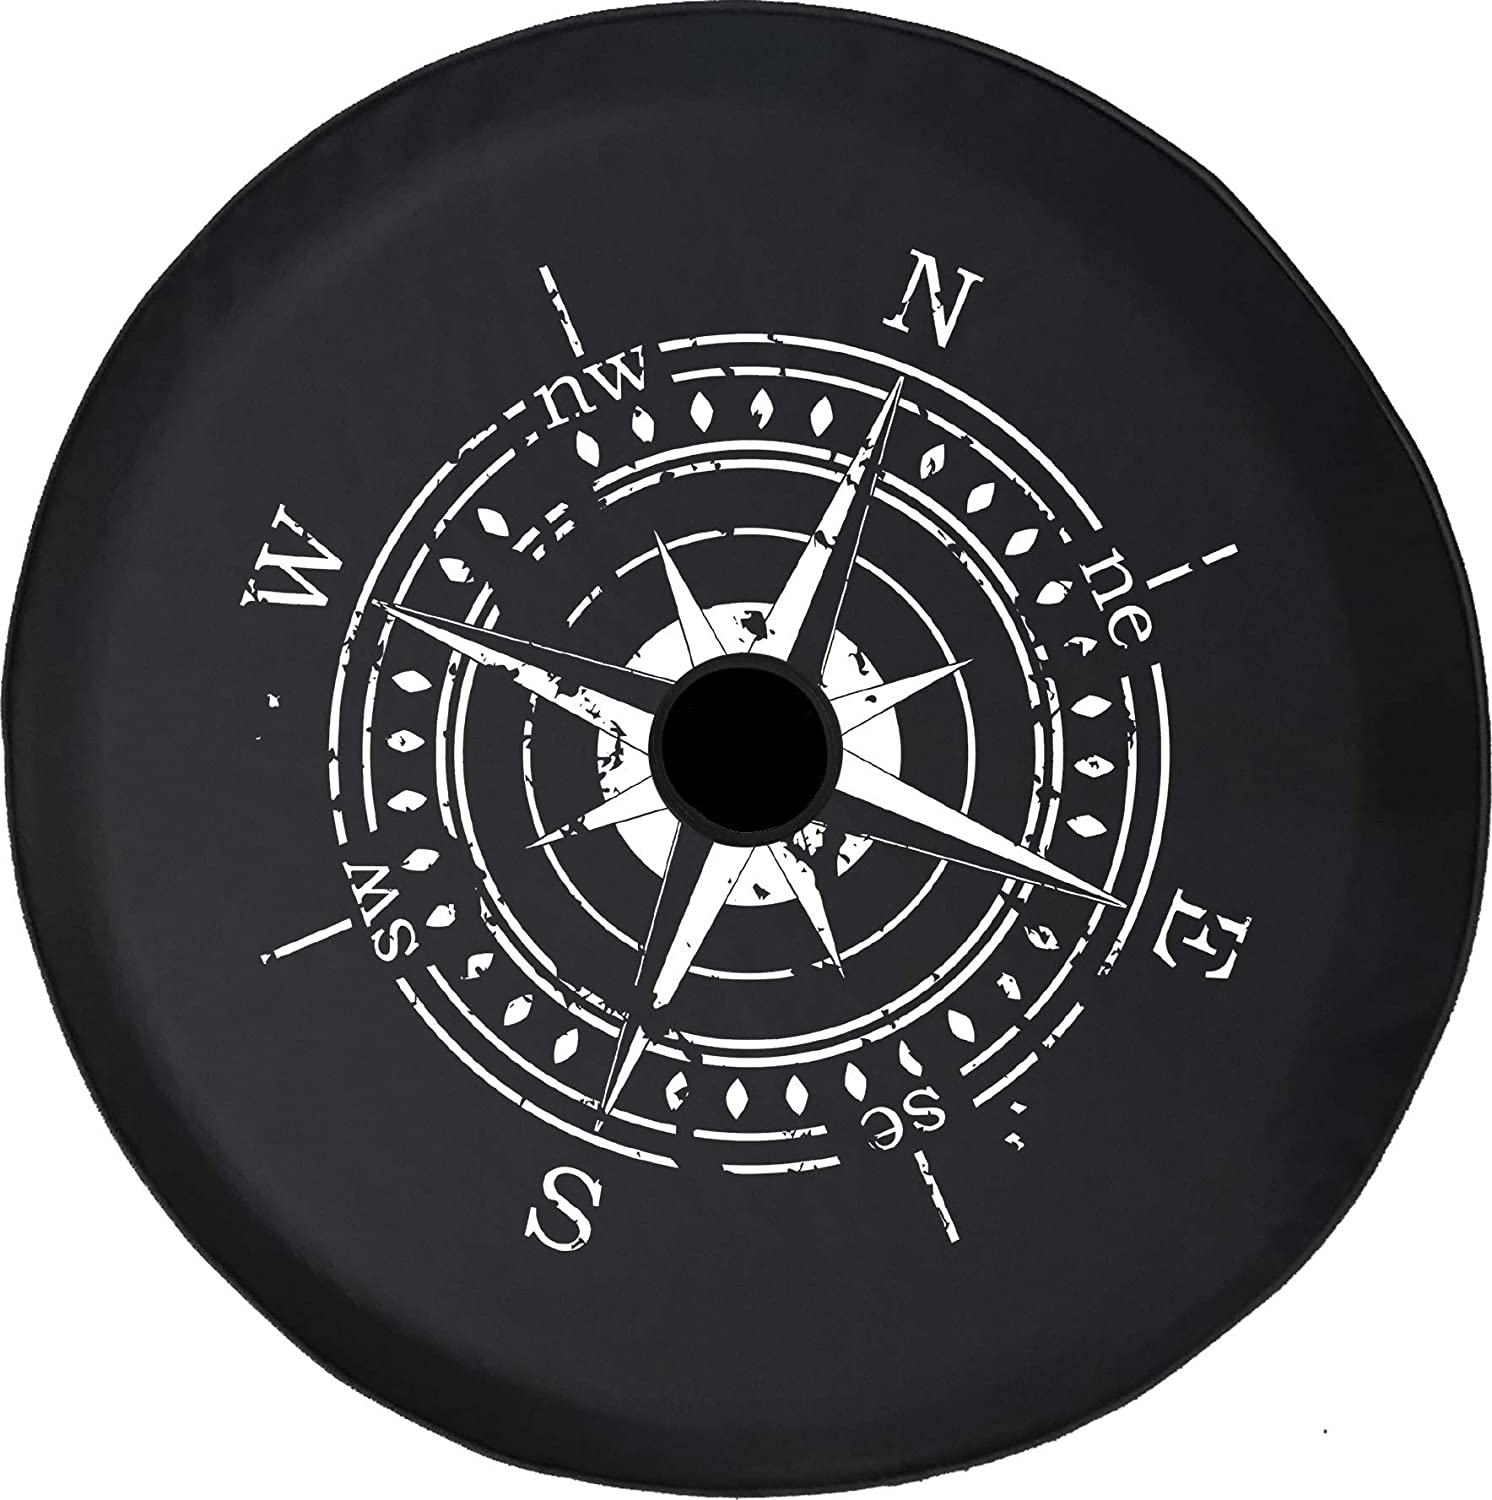 Pike Outdoors JL Series Spare Tire Cover Backup Camera Hole Distressed Nautical Compass Travel Black 32 in